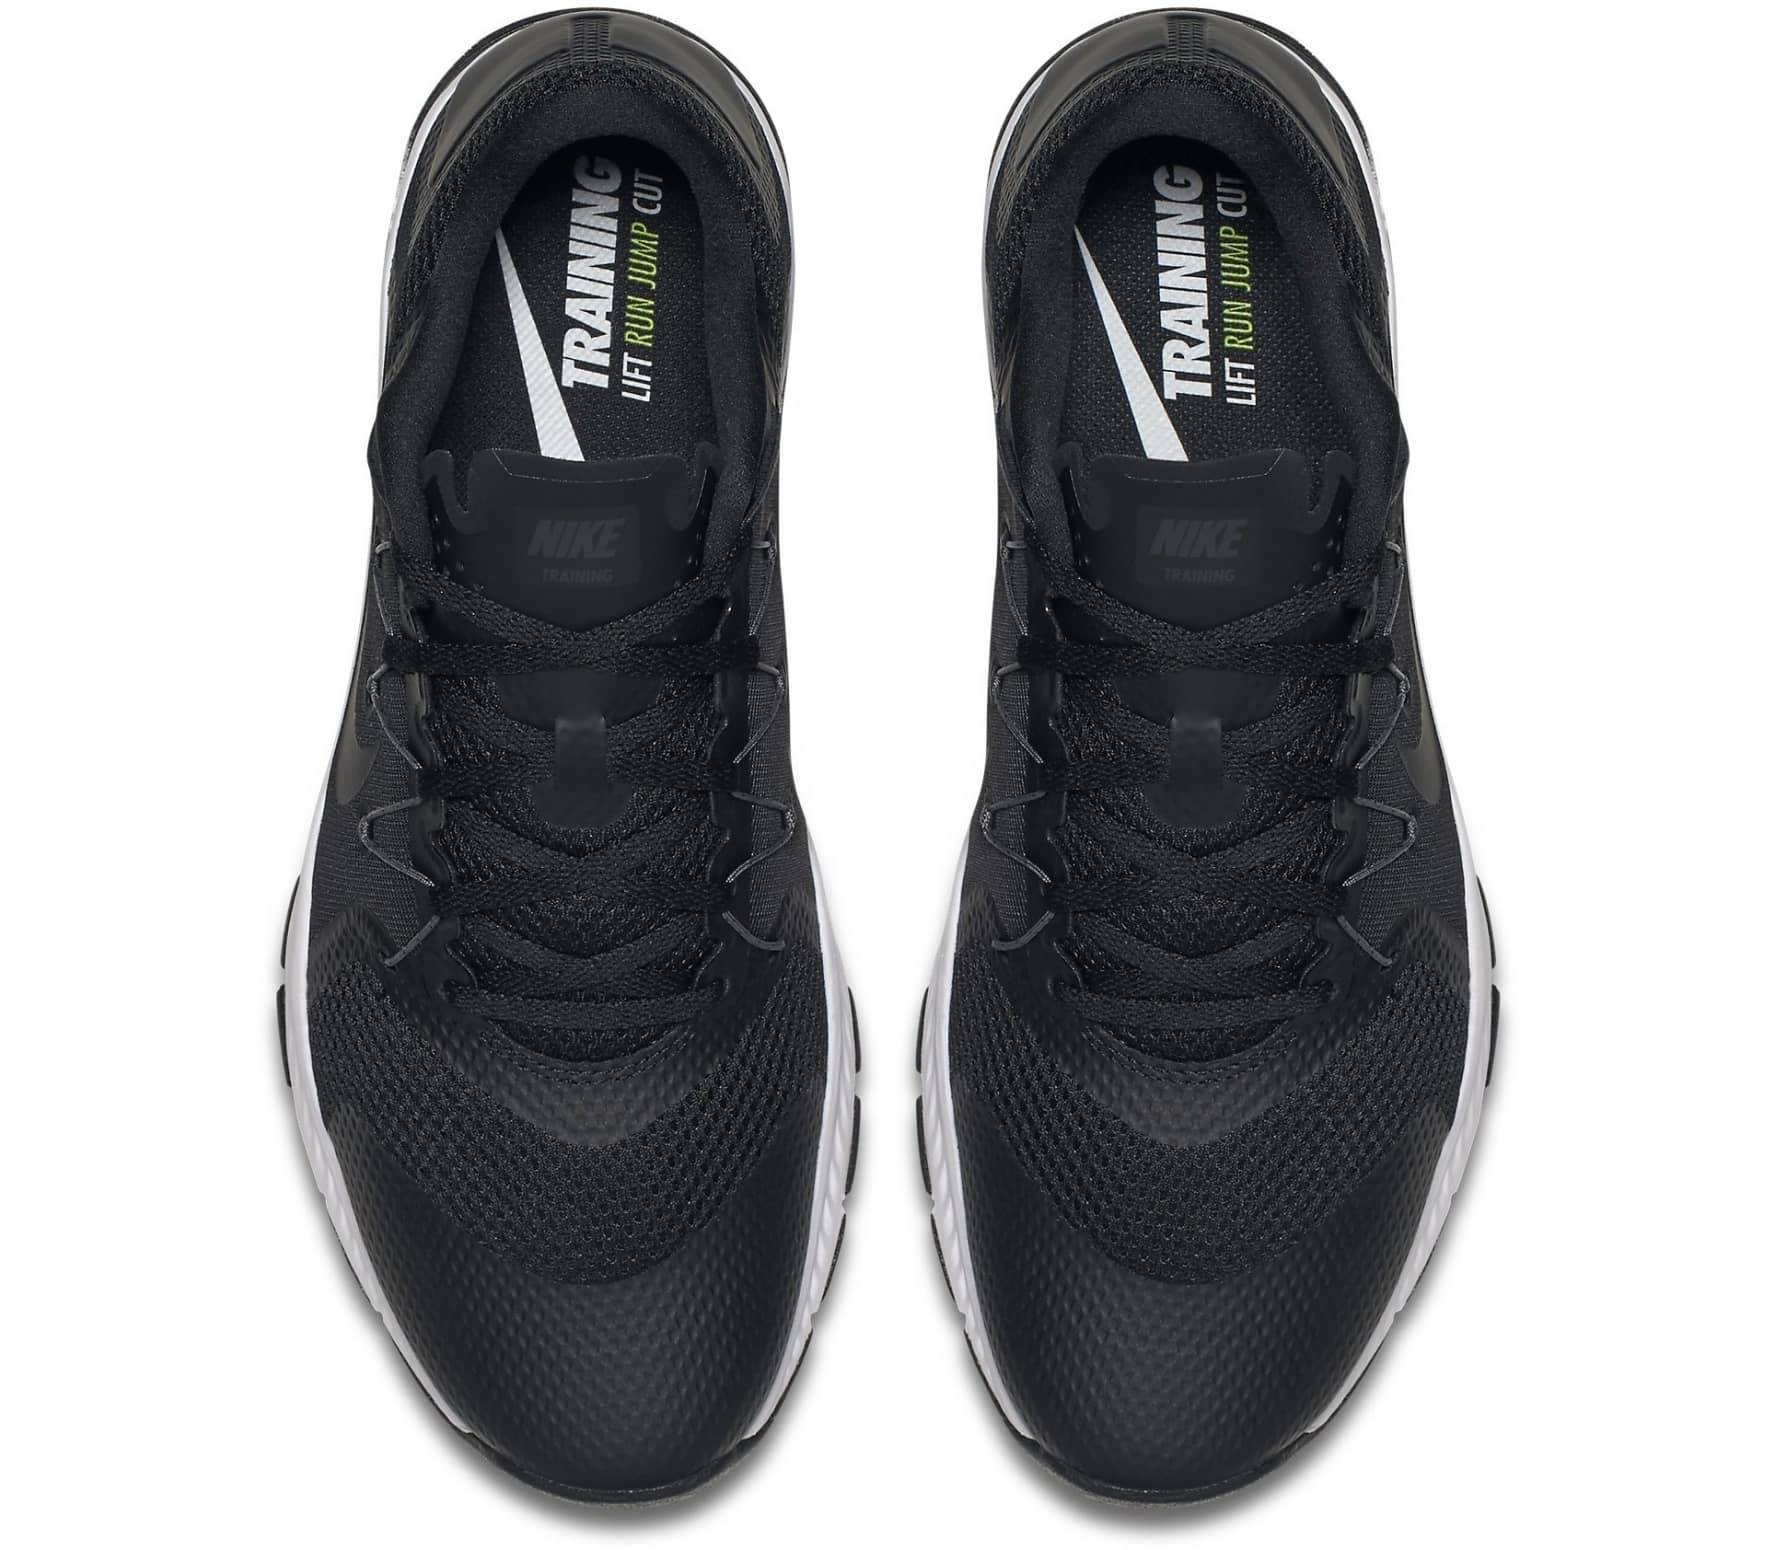 At Zoom Men's Nike Training It Complete ShoesblackwhiteBuy PXukOZi